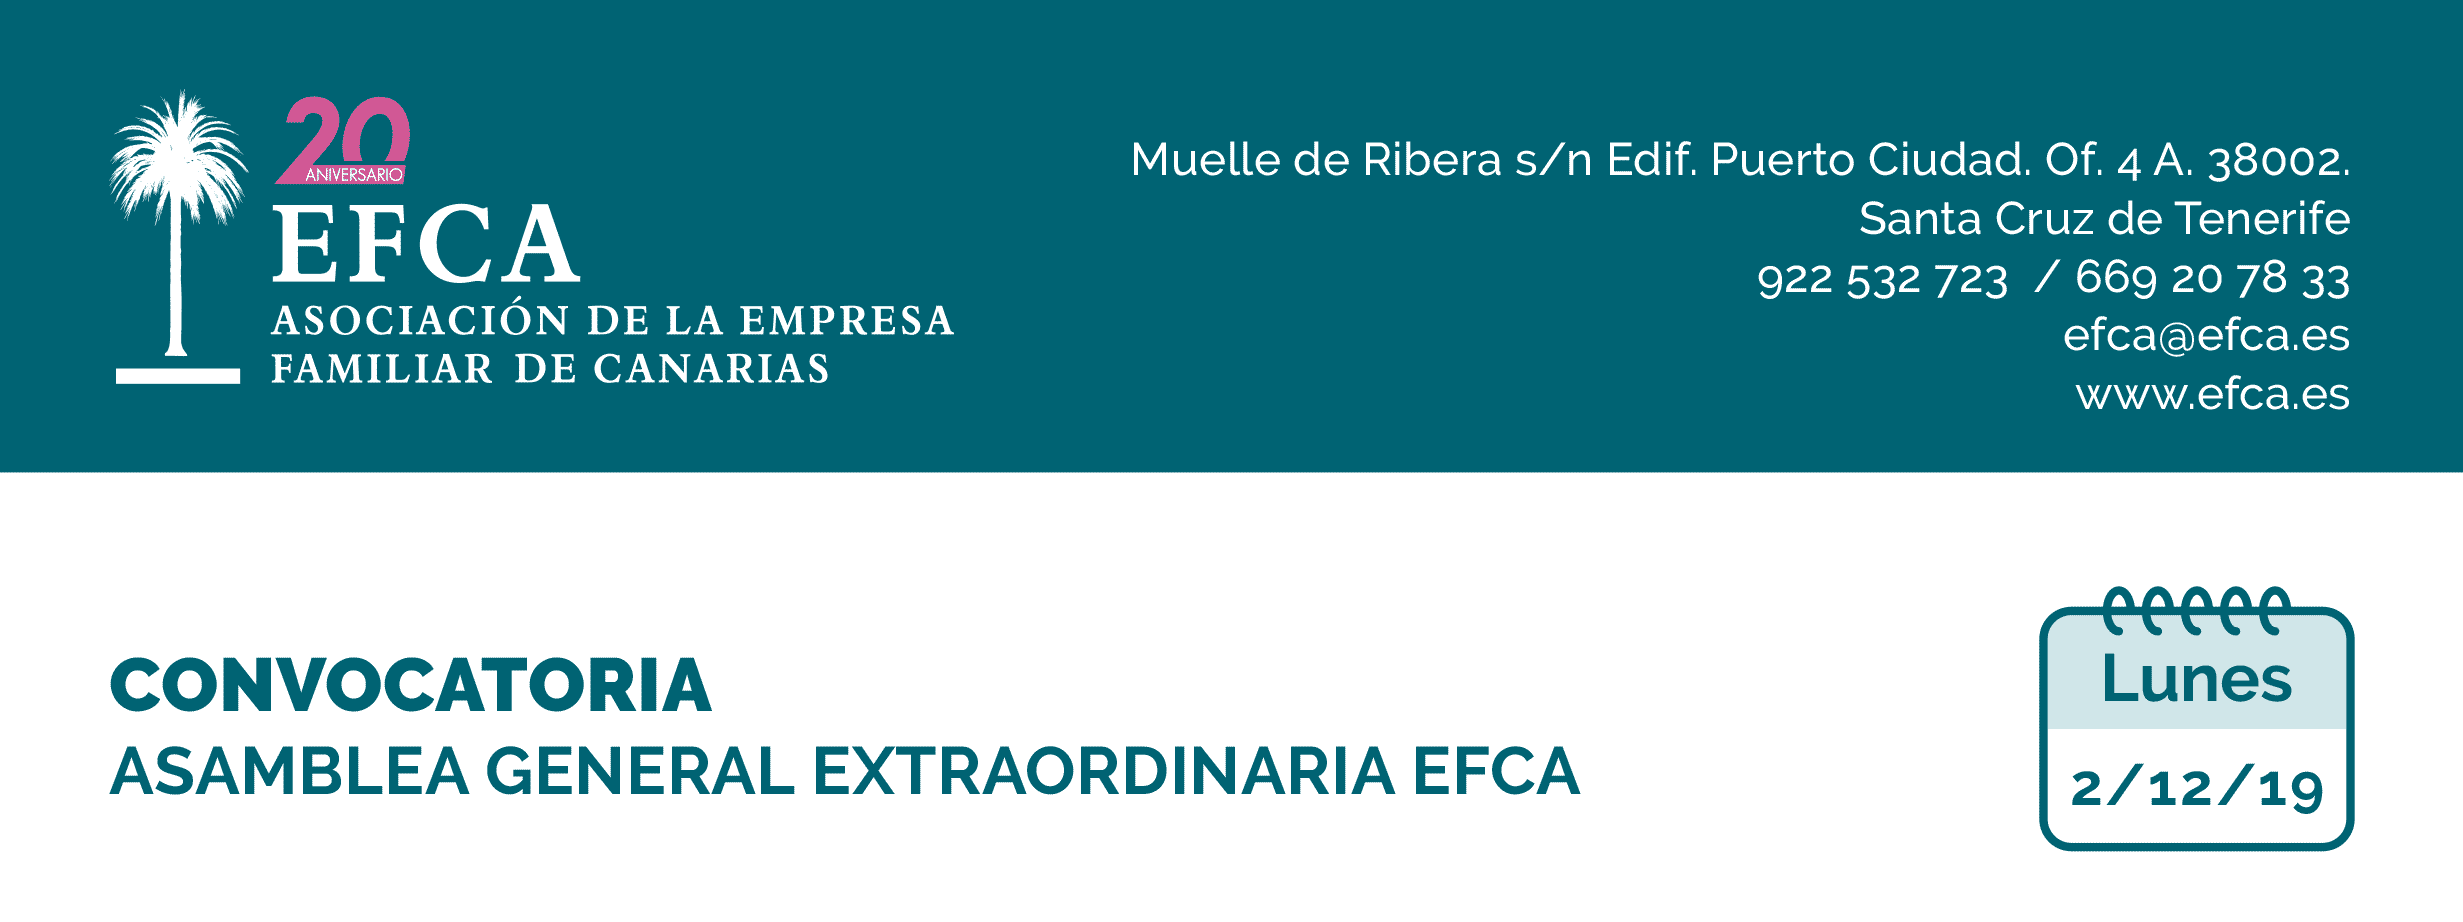 Convocatoria de Junta General EFCA